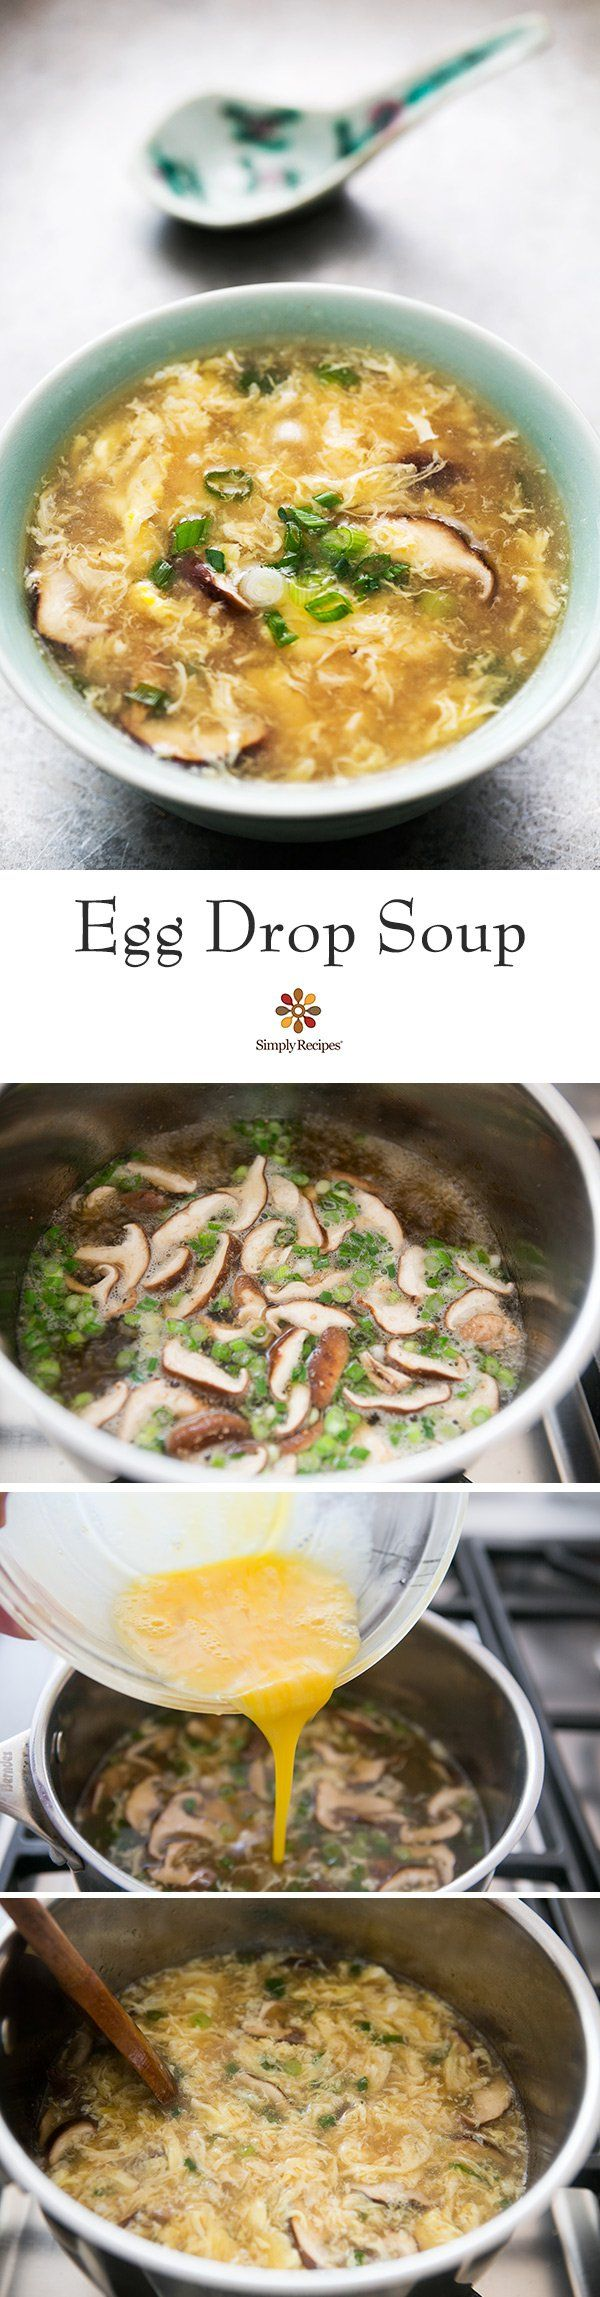 Egg Drop Soup by simplyrecipes: This classic  comes together in minutes, with just a few simple ingredients—stock, soy sauce, eggs, ginger, green onions, mushrooms. #Soup #Egg_Drop #Easy